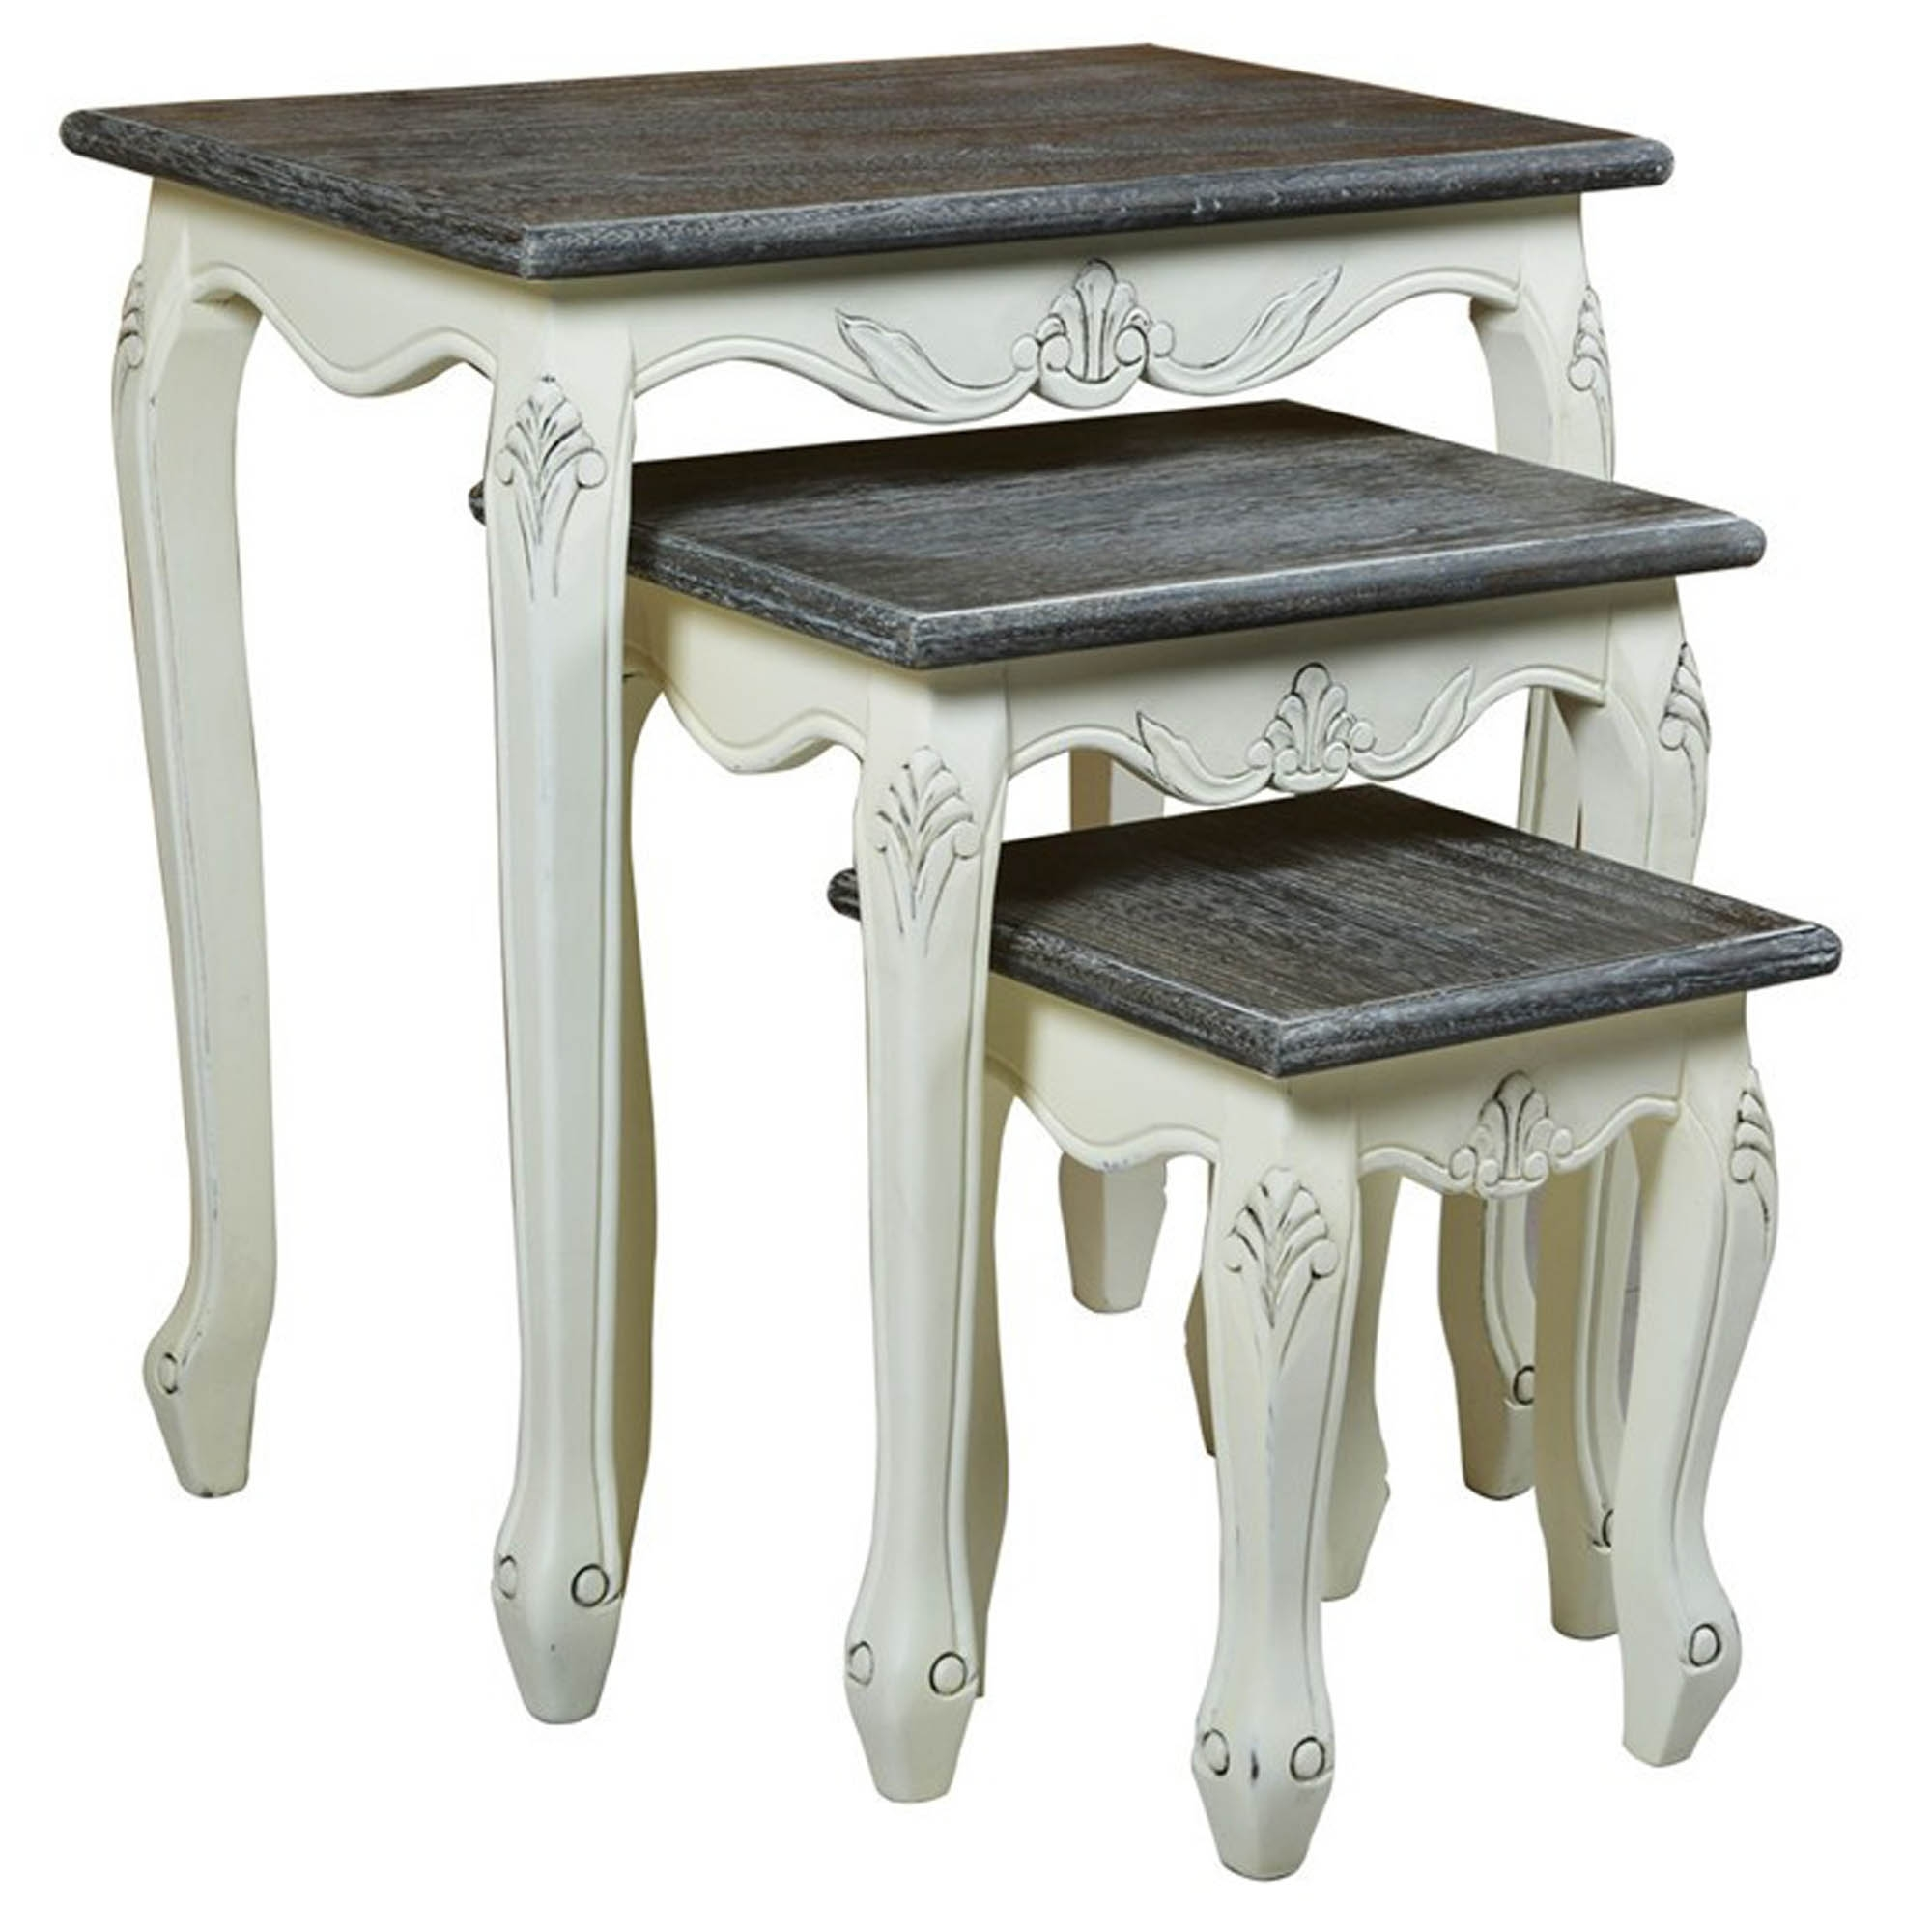 Heritage Shabby Chic Nest Of 3 Tables Side Tables Homesdirect365